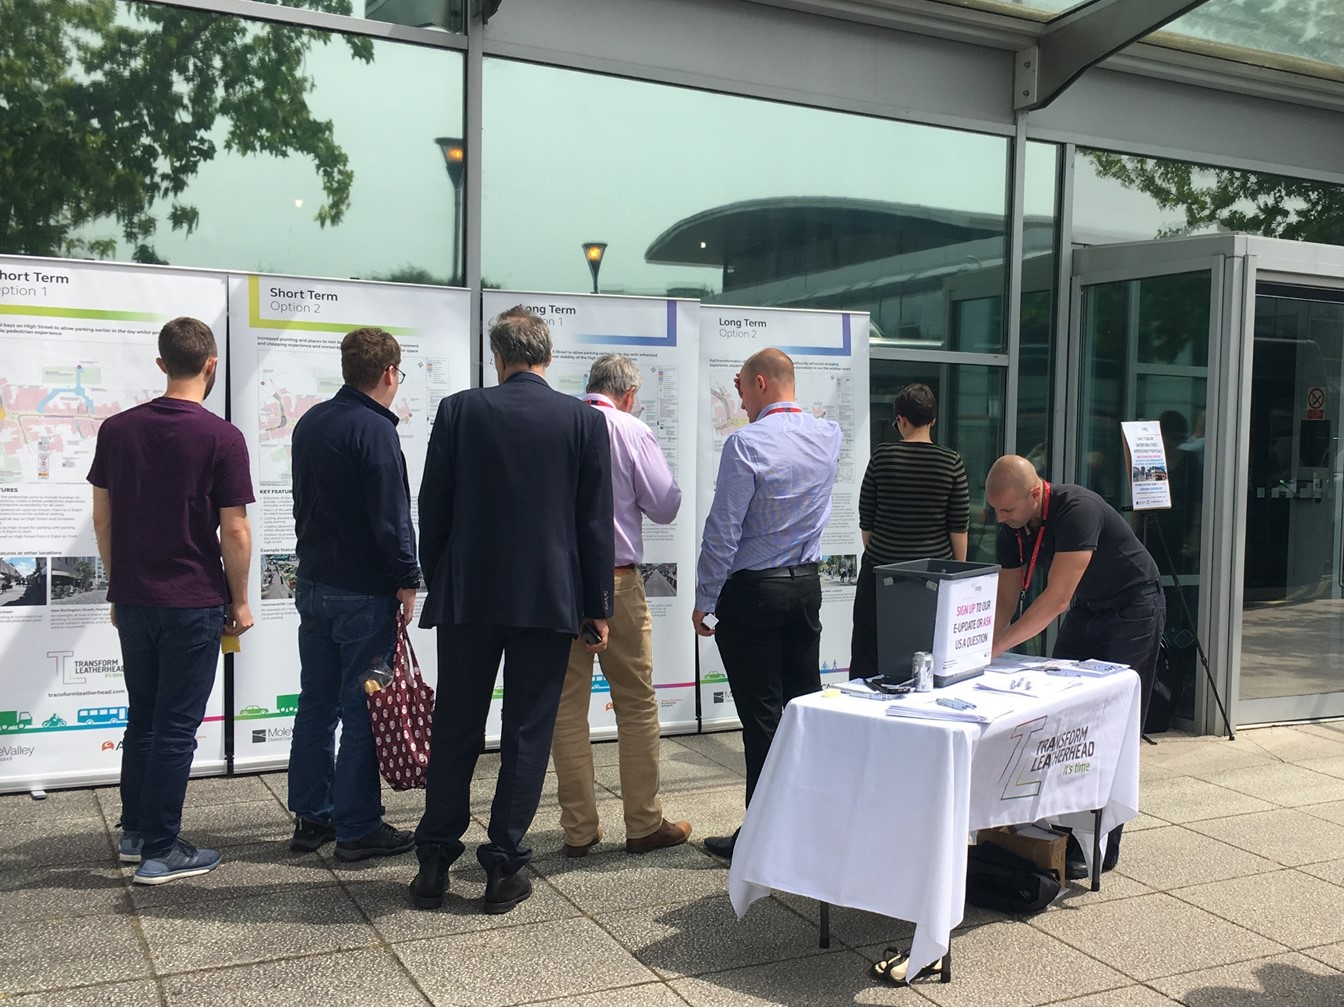 People taking part in the High Street consultation